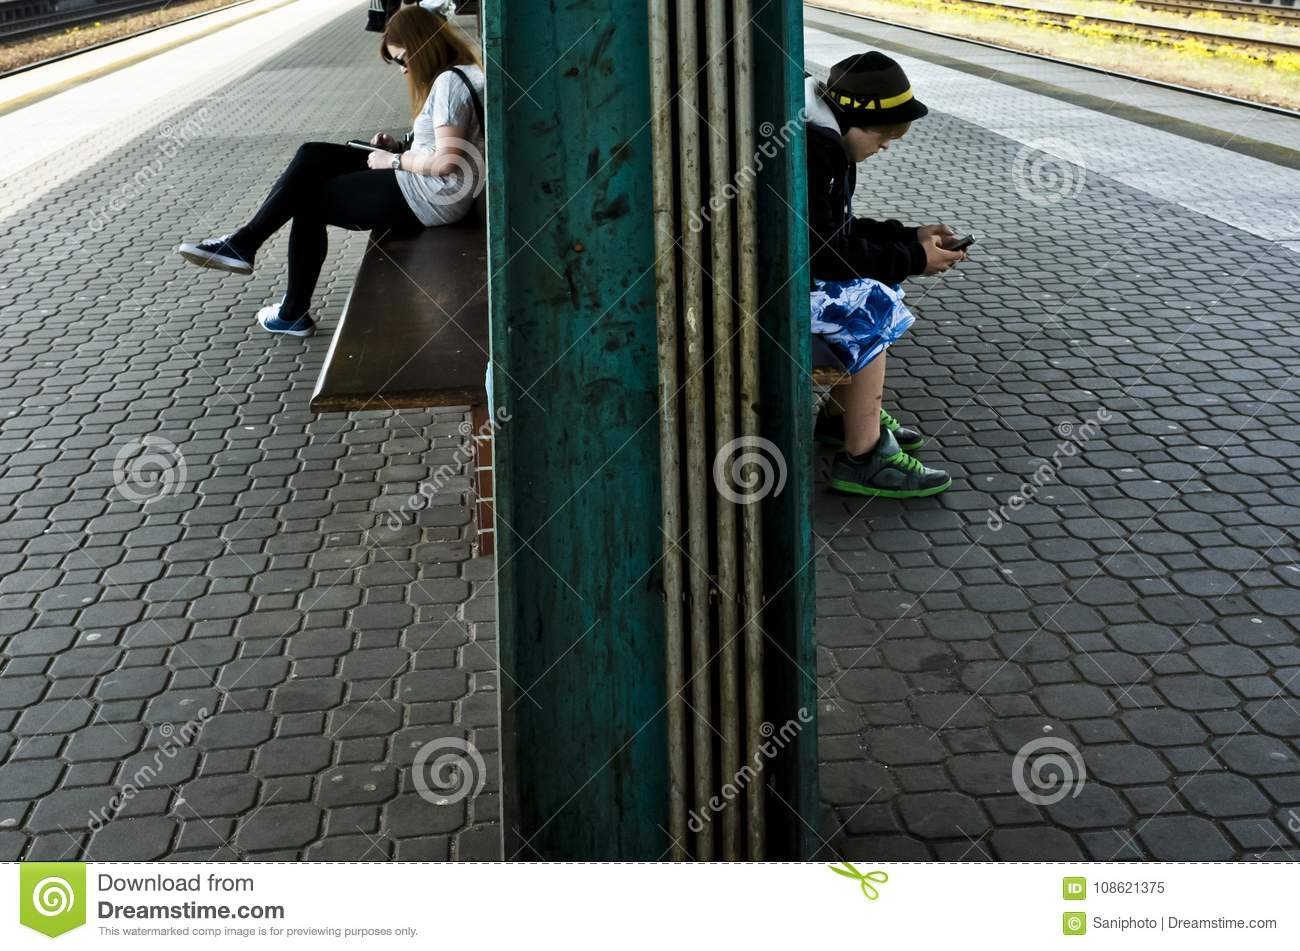 Young boy and girl sitting and waiting a train while using their cellphones